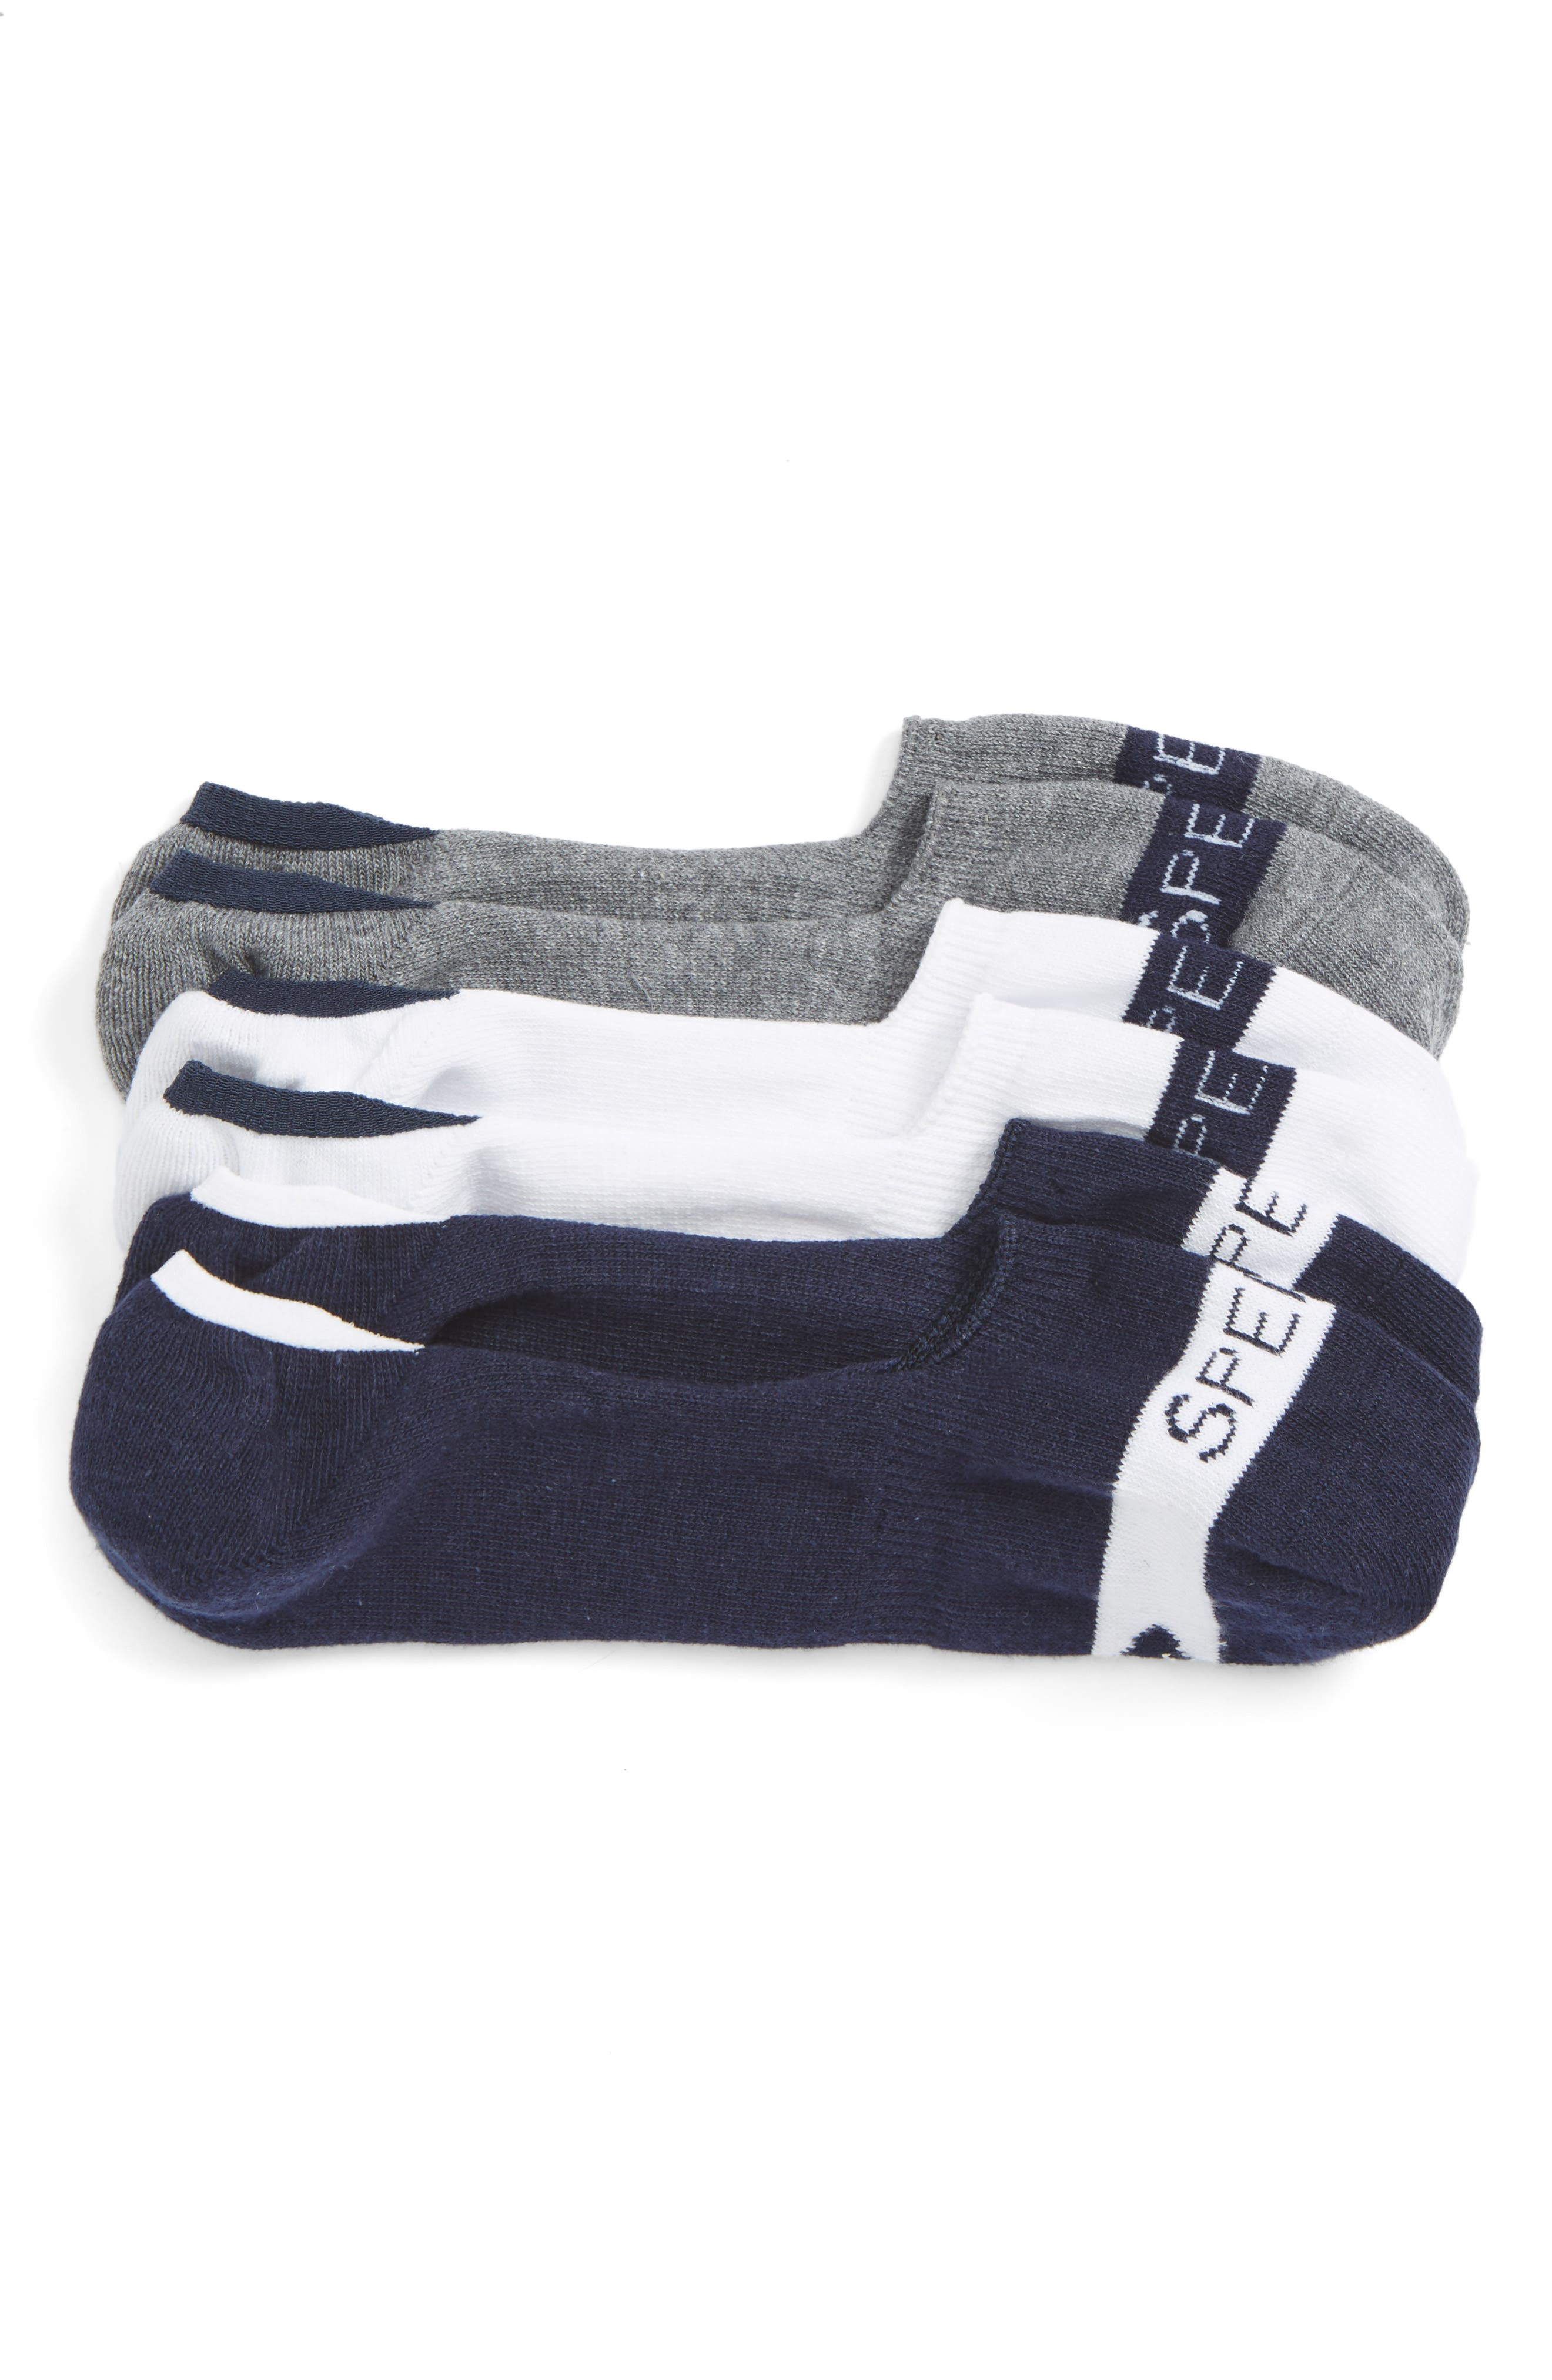 Signature Assorted 3-Pack No-Show Socks,                         Main,                         color, Navy/ White/ Charcoal